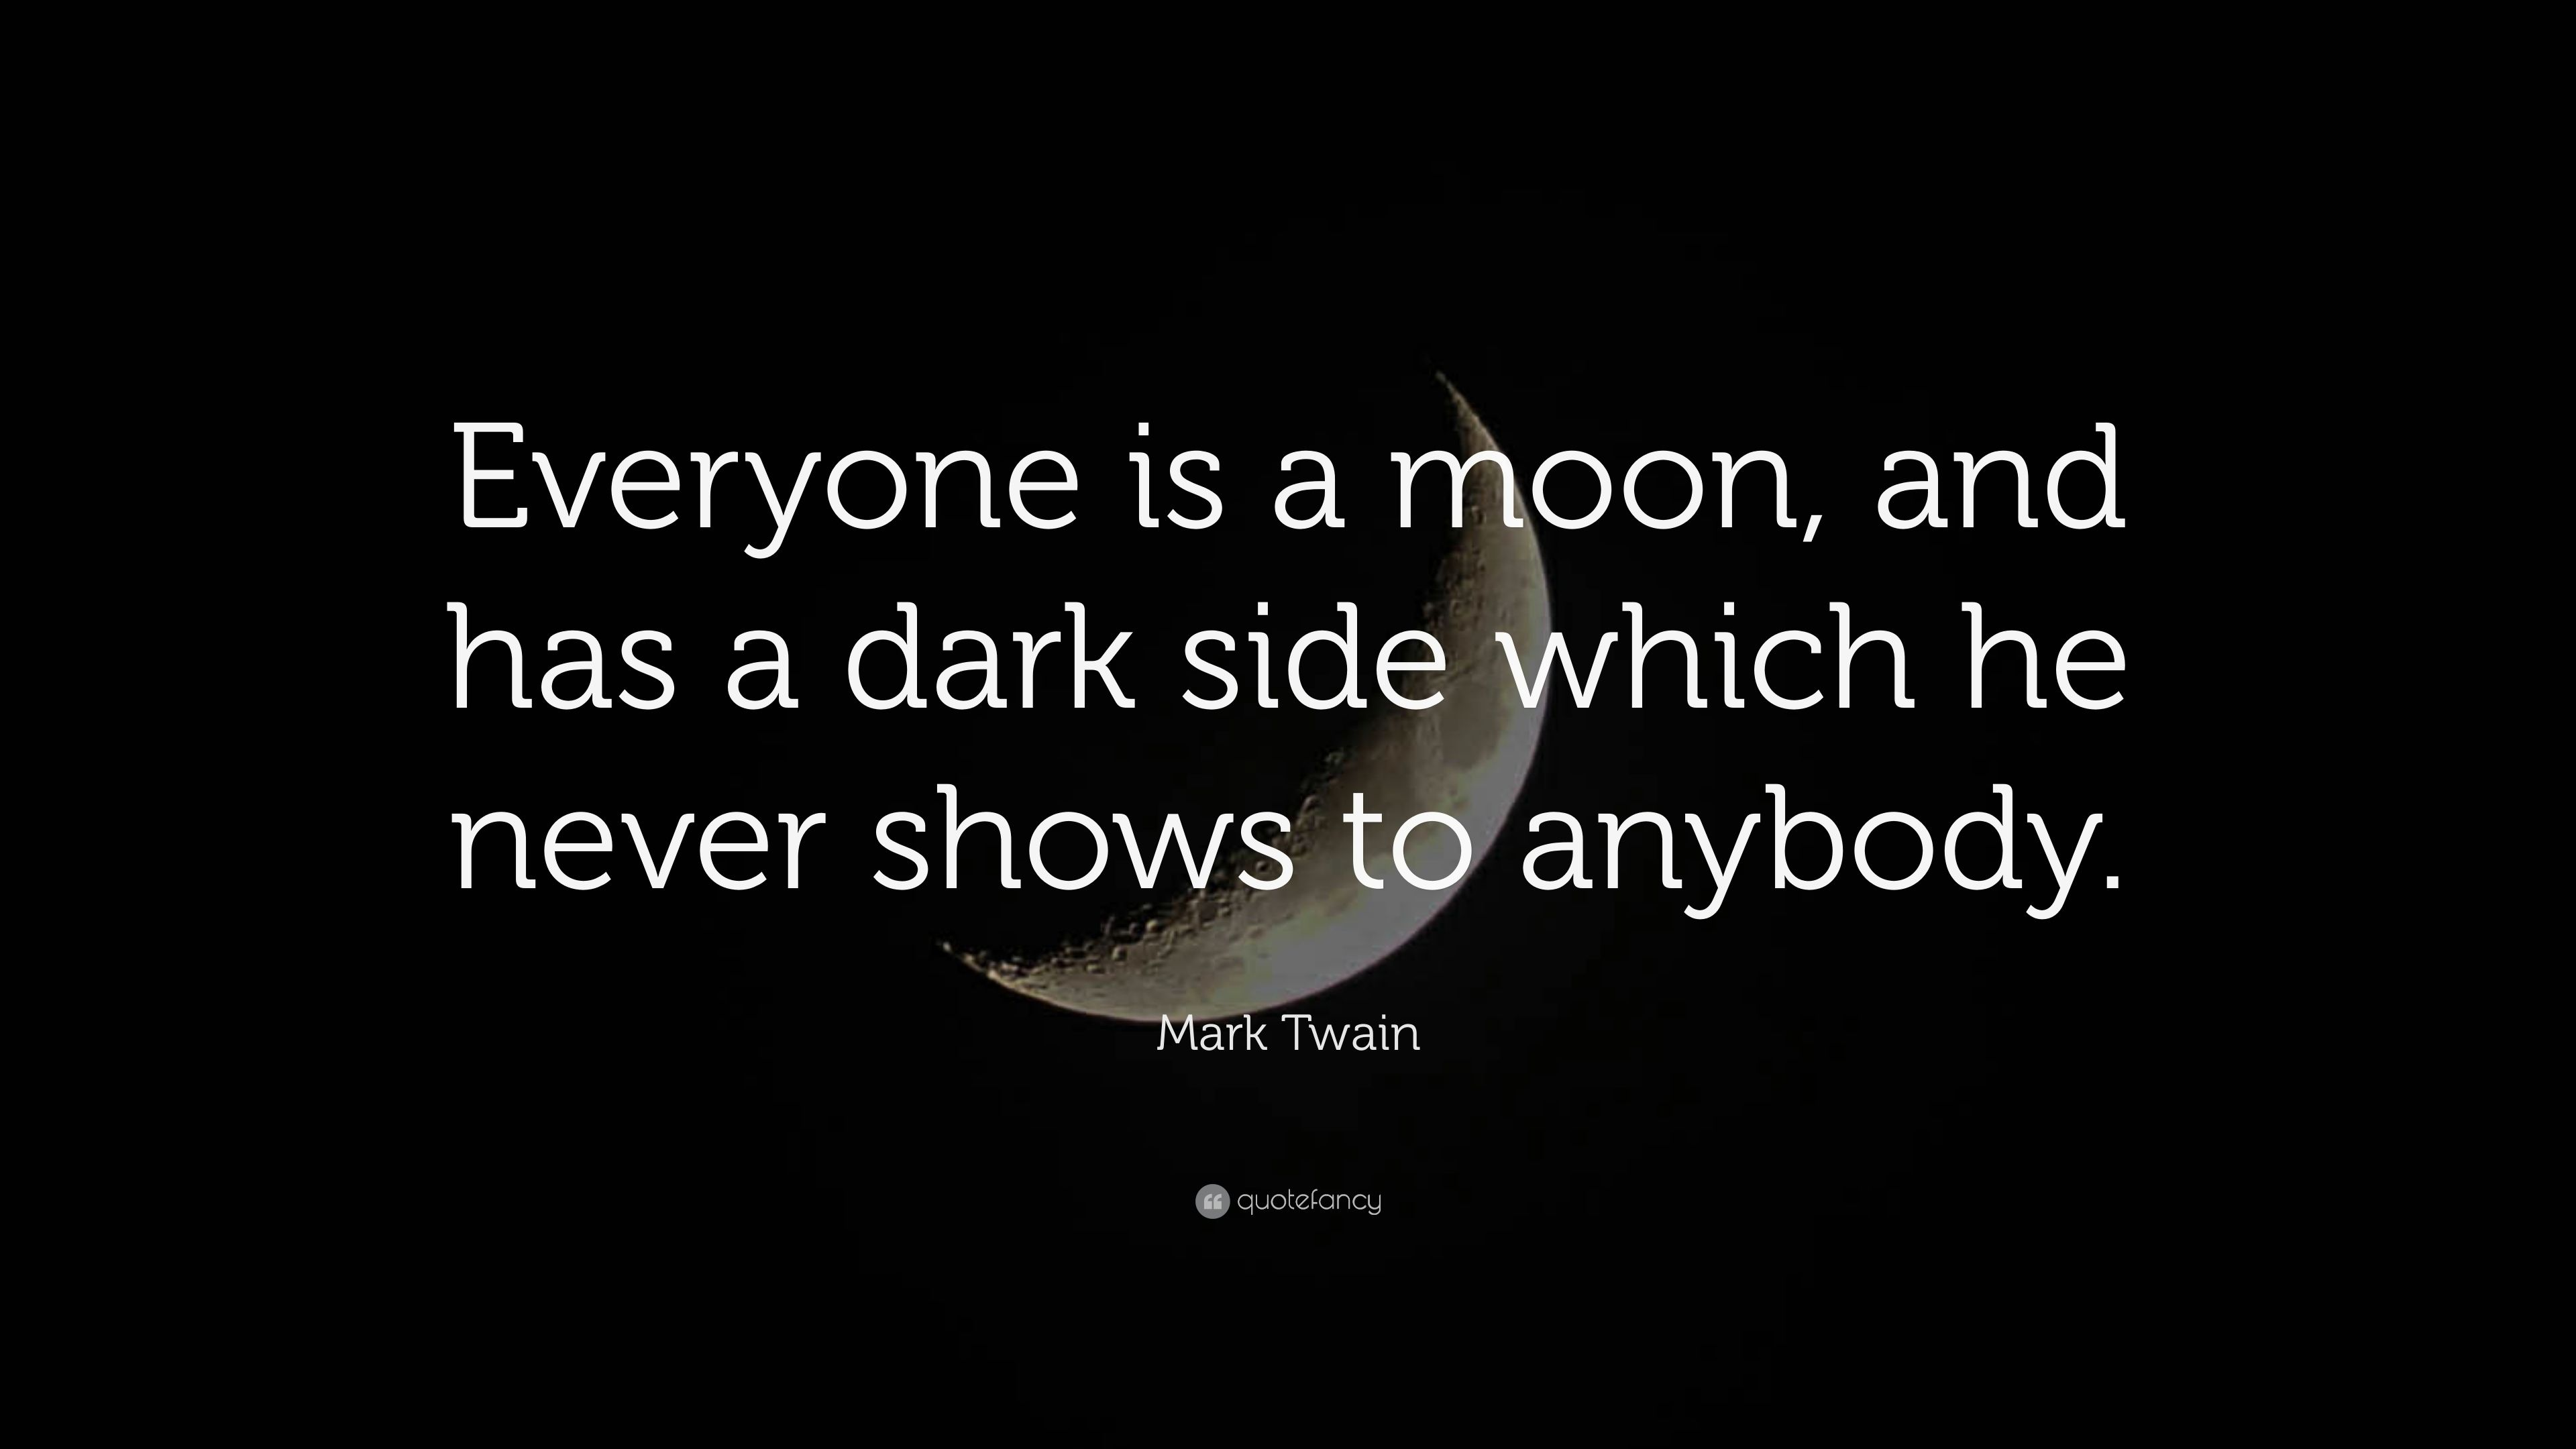 Mark Twain Quotes Mark Twain Quotes Most Romantic Quotes Moon Quotes